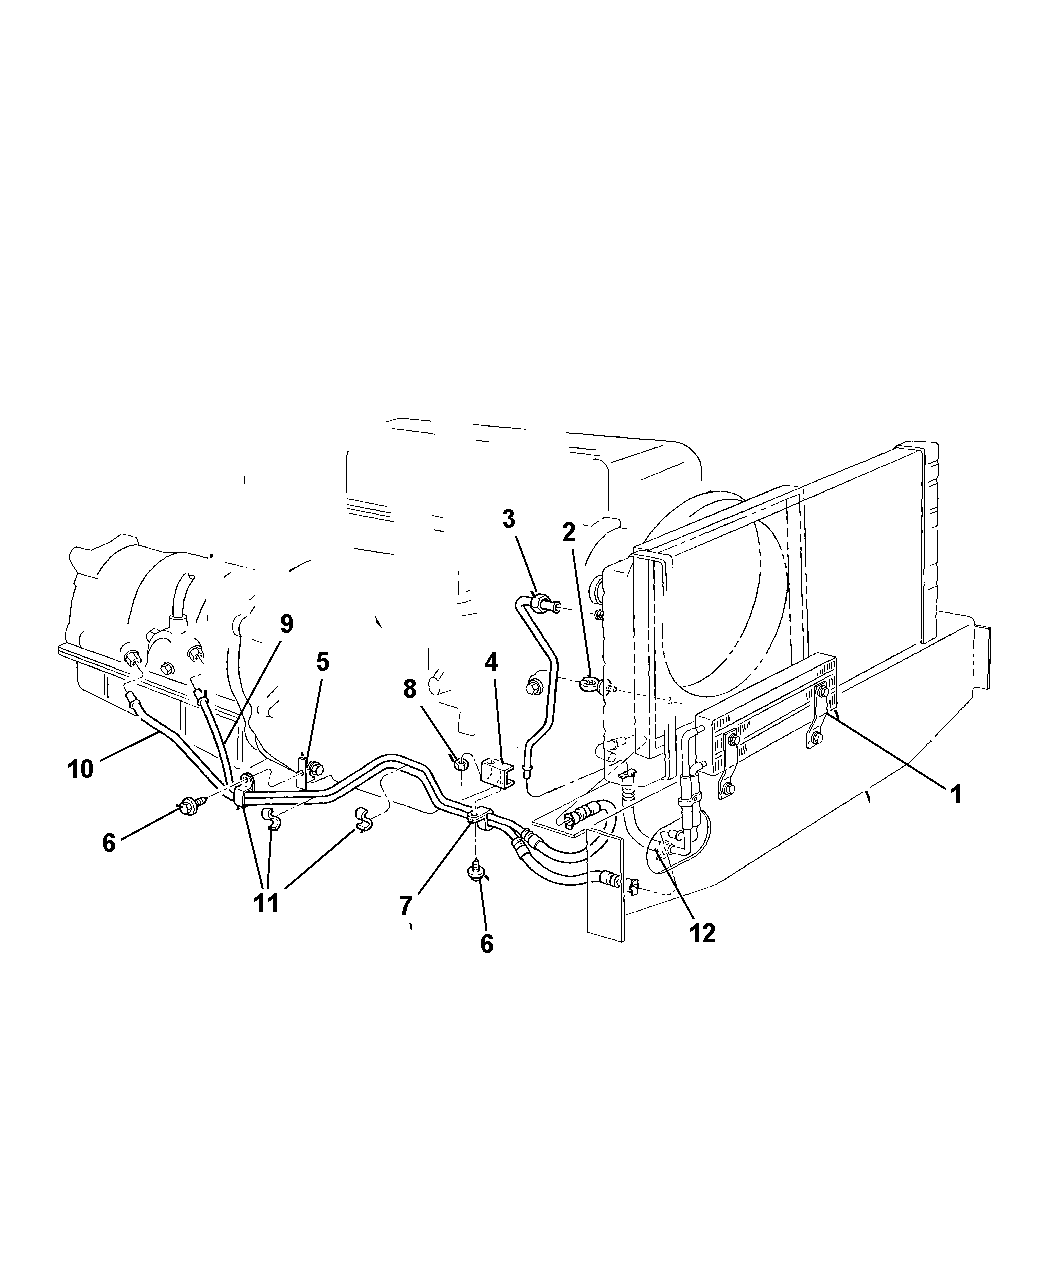 1997 Jeep Cherokee Transmission Diagram : 39 Wiring